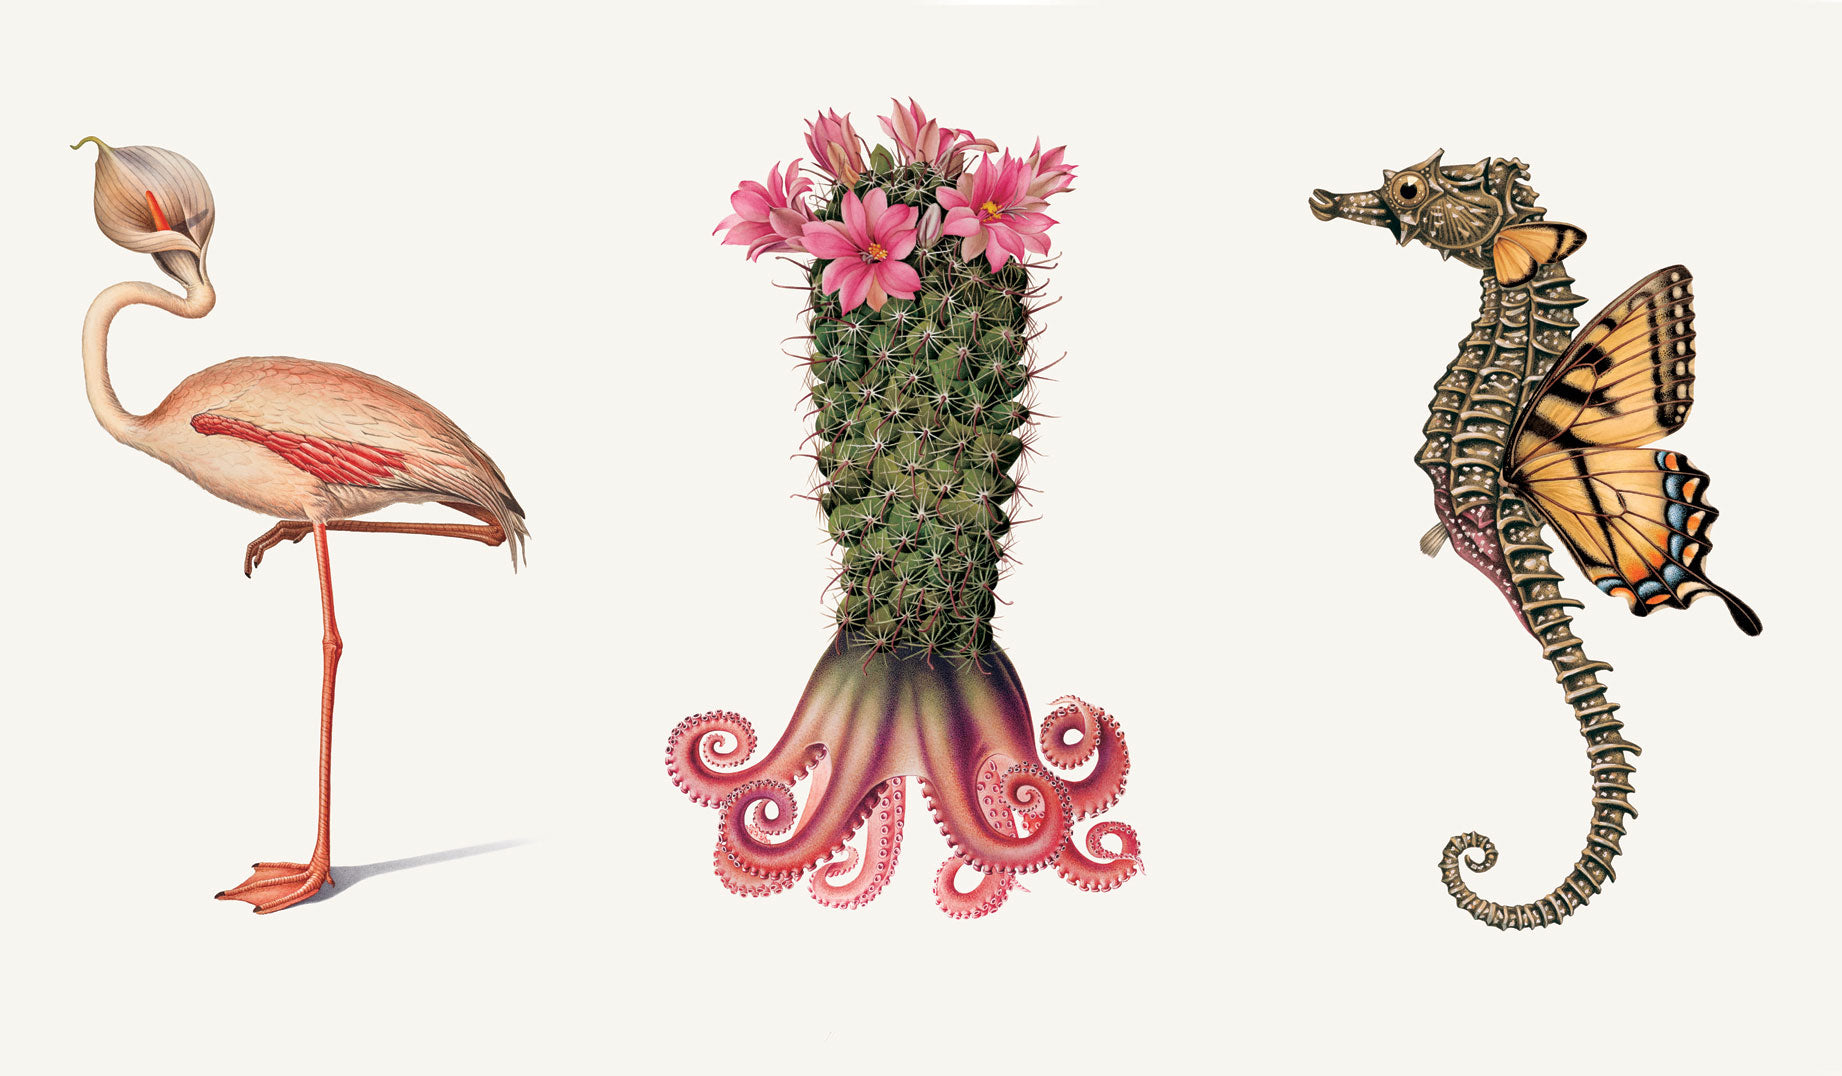 Effectivae Managerum (flamingo), Maximus Designex (cactus), and Innovato Ideatis (seahorse)